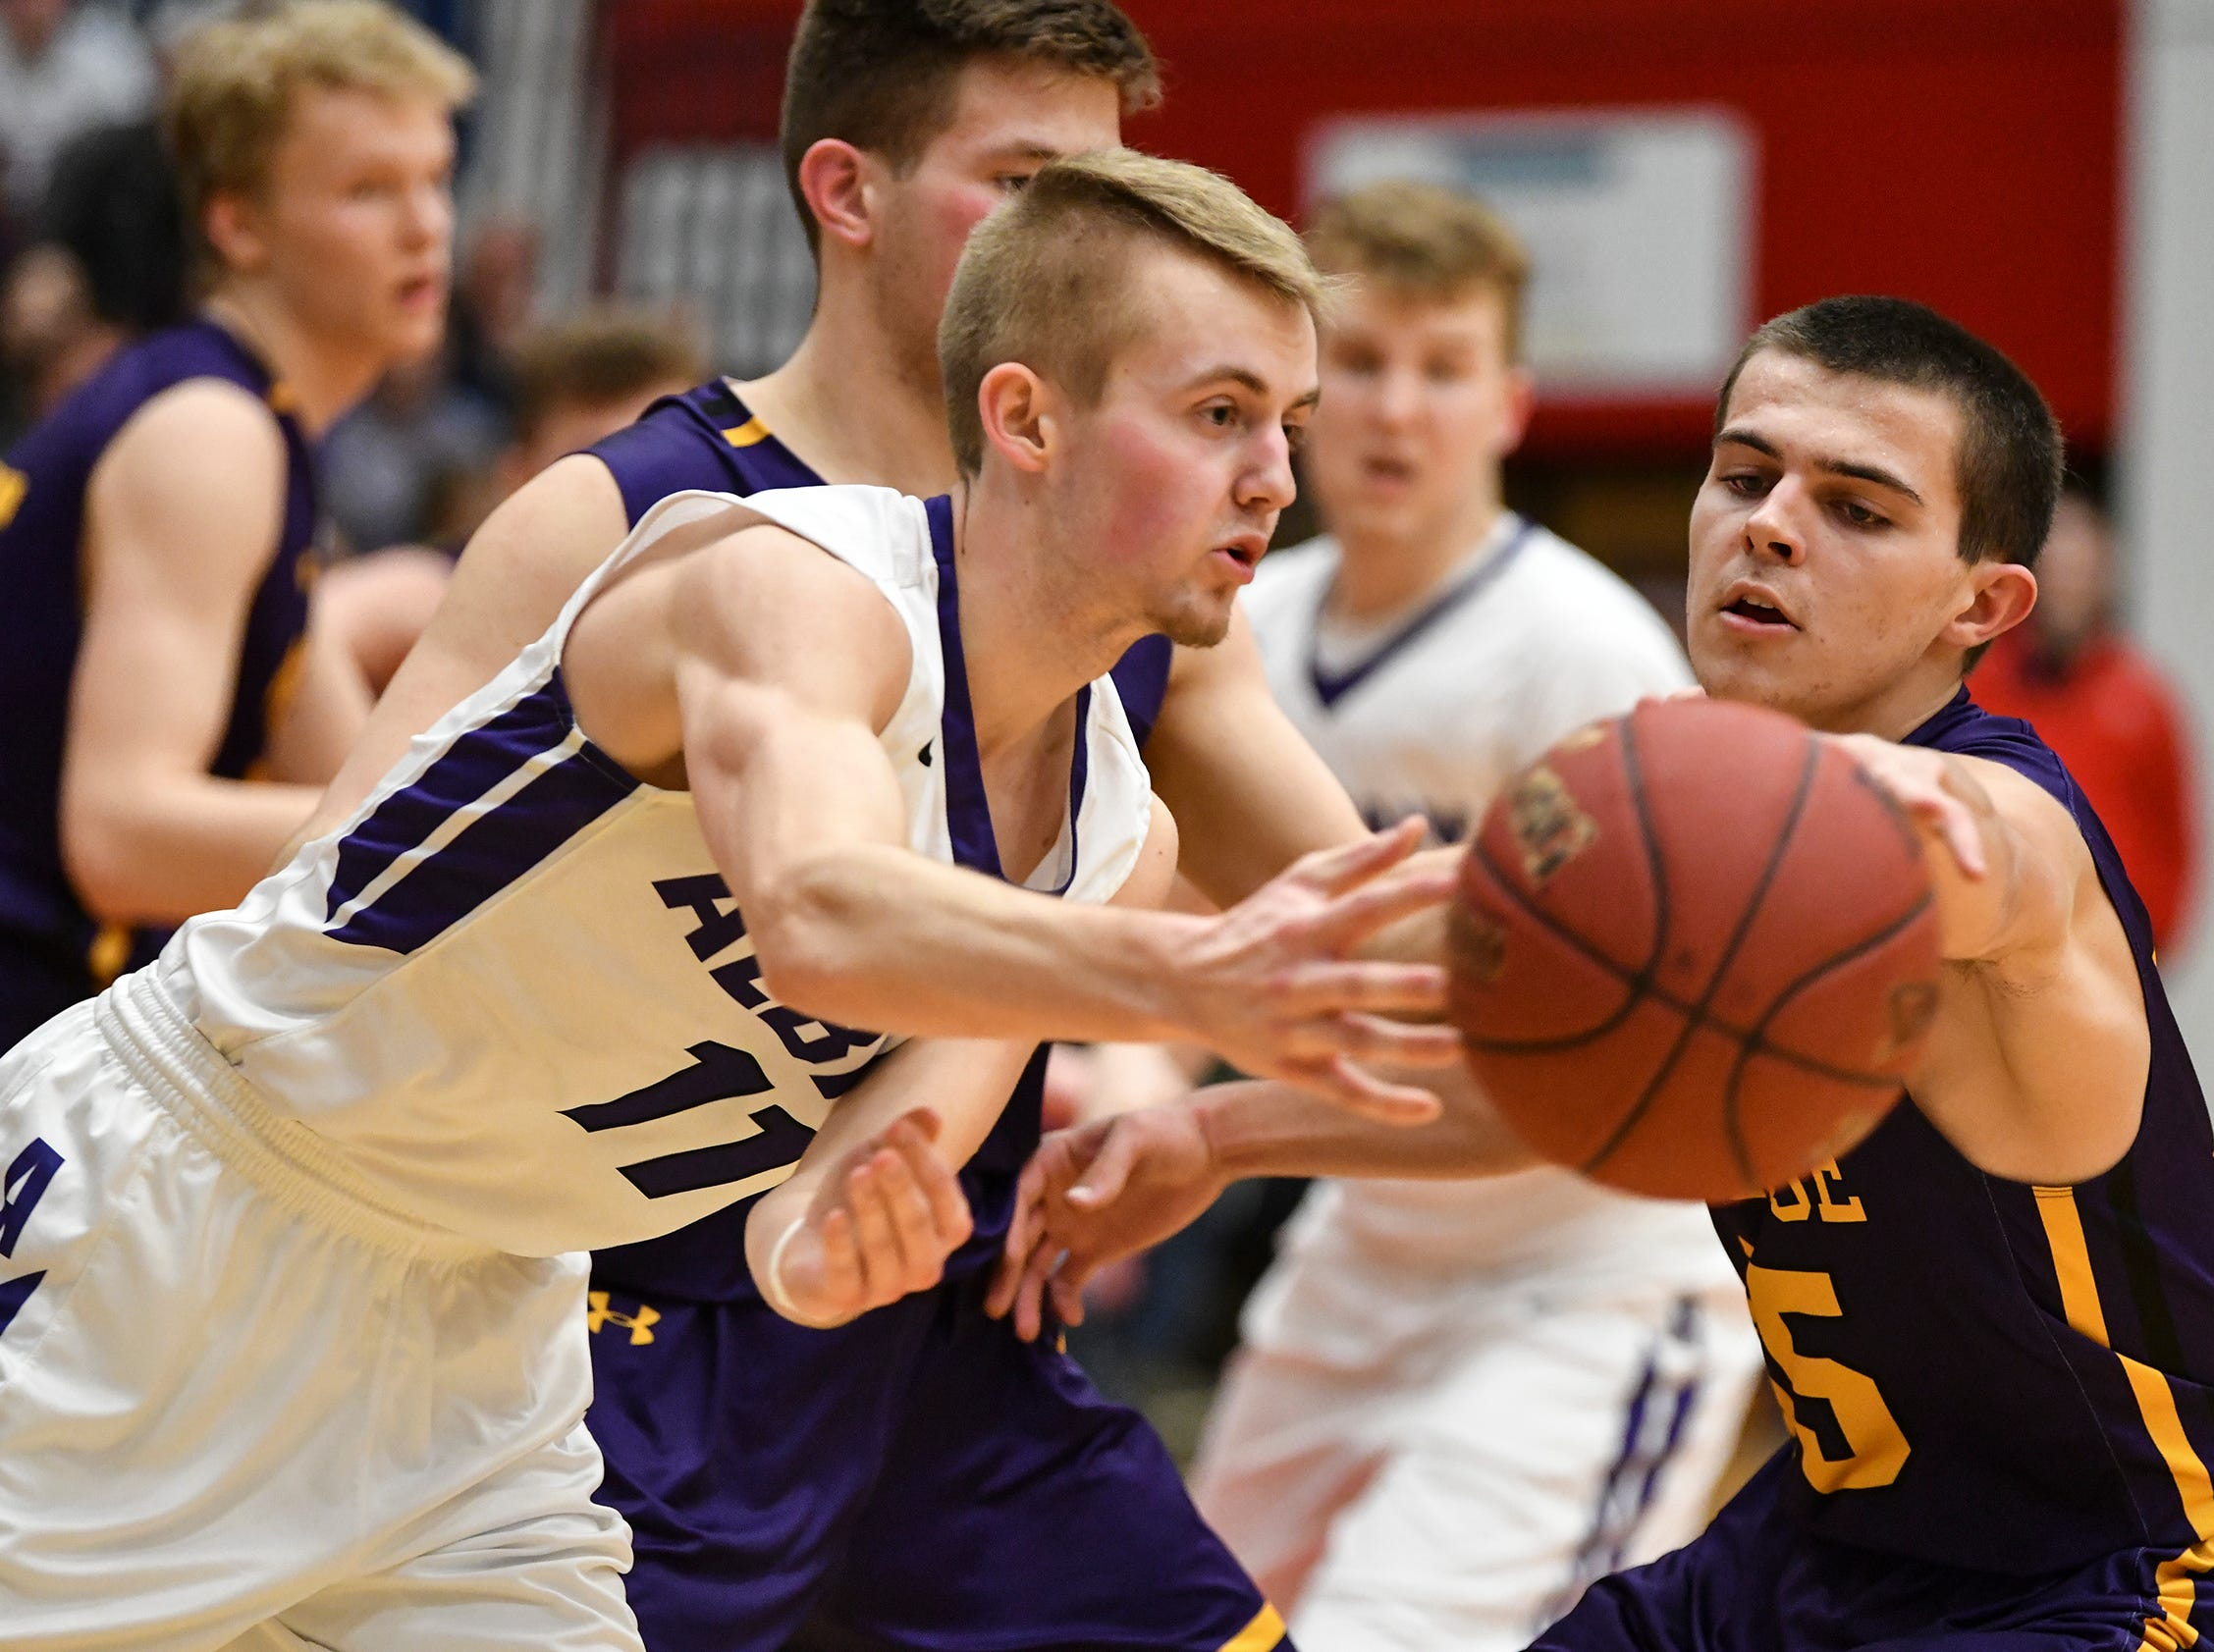 Albany's Jordan Schiffler is guarded by Preston Keaveny of Melrose  during the second half of the Friday, March 15, Section 6-2A championship game at the Halenbeck Hall in St. Cloud.